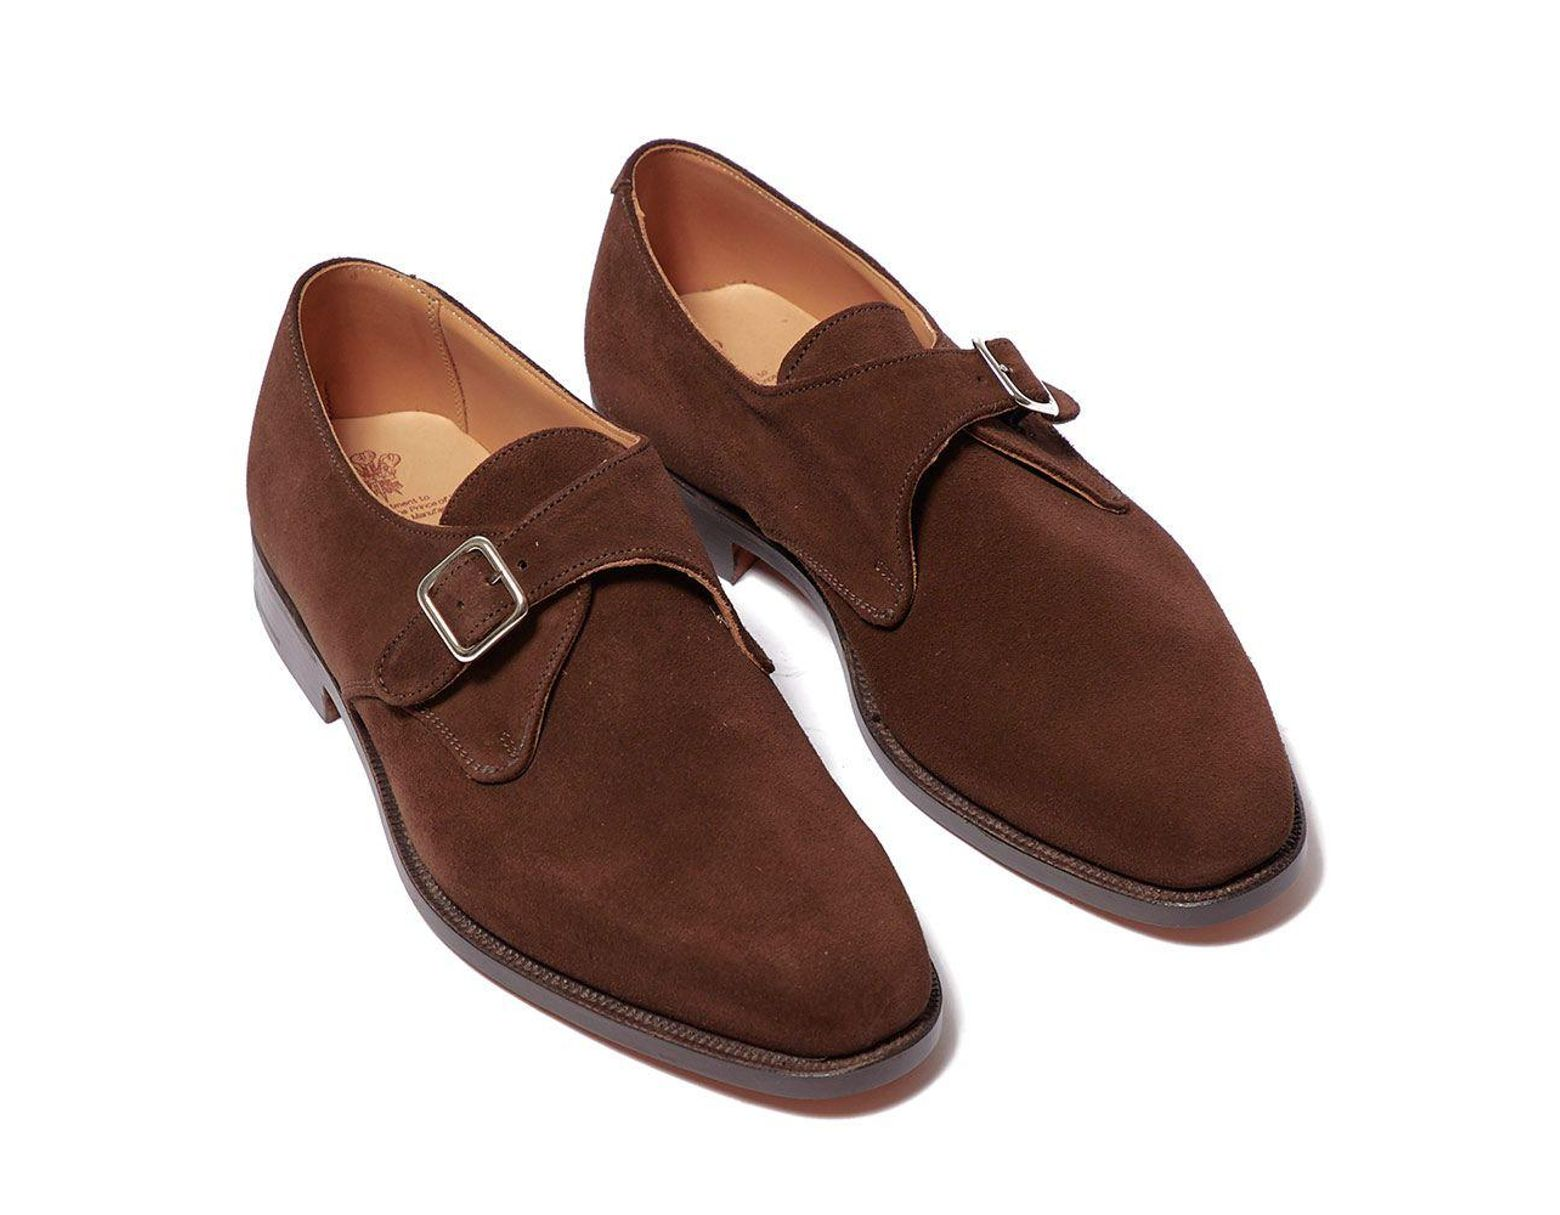 1cf6edd5efe3f0 Tricker's Mayfair Chocolate Repello Suede Single Monk Strap Shoes in Brown  for Men - Lyst